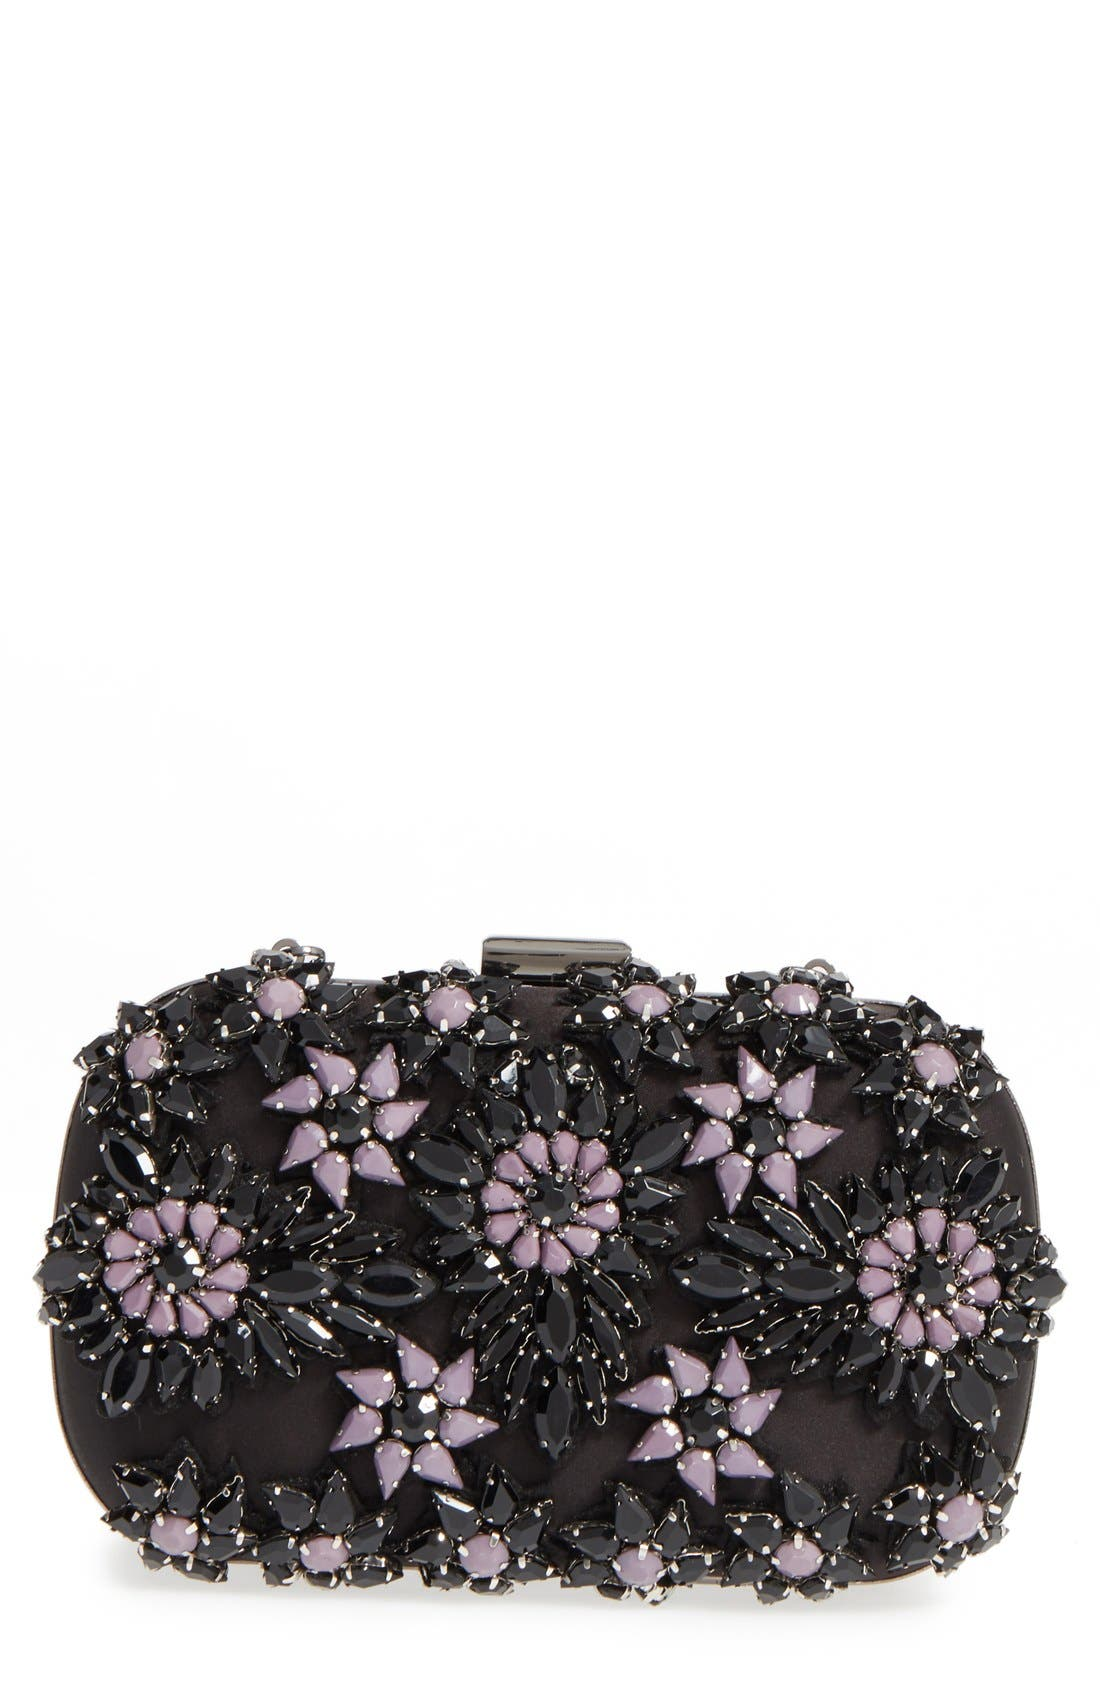 Alternate Image 1 Selected - Natasha Couture Crystal Floral Box Clutch